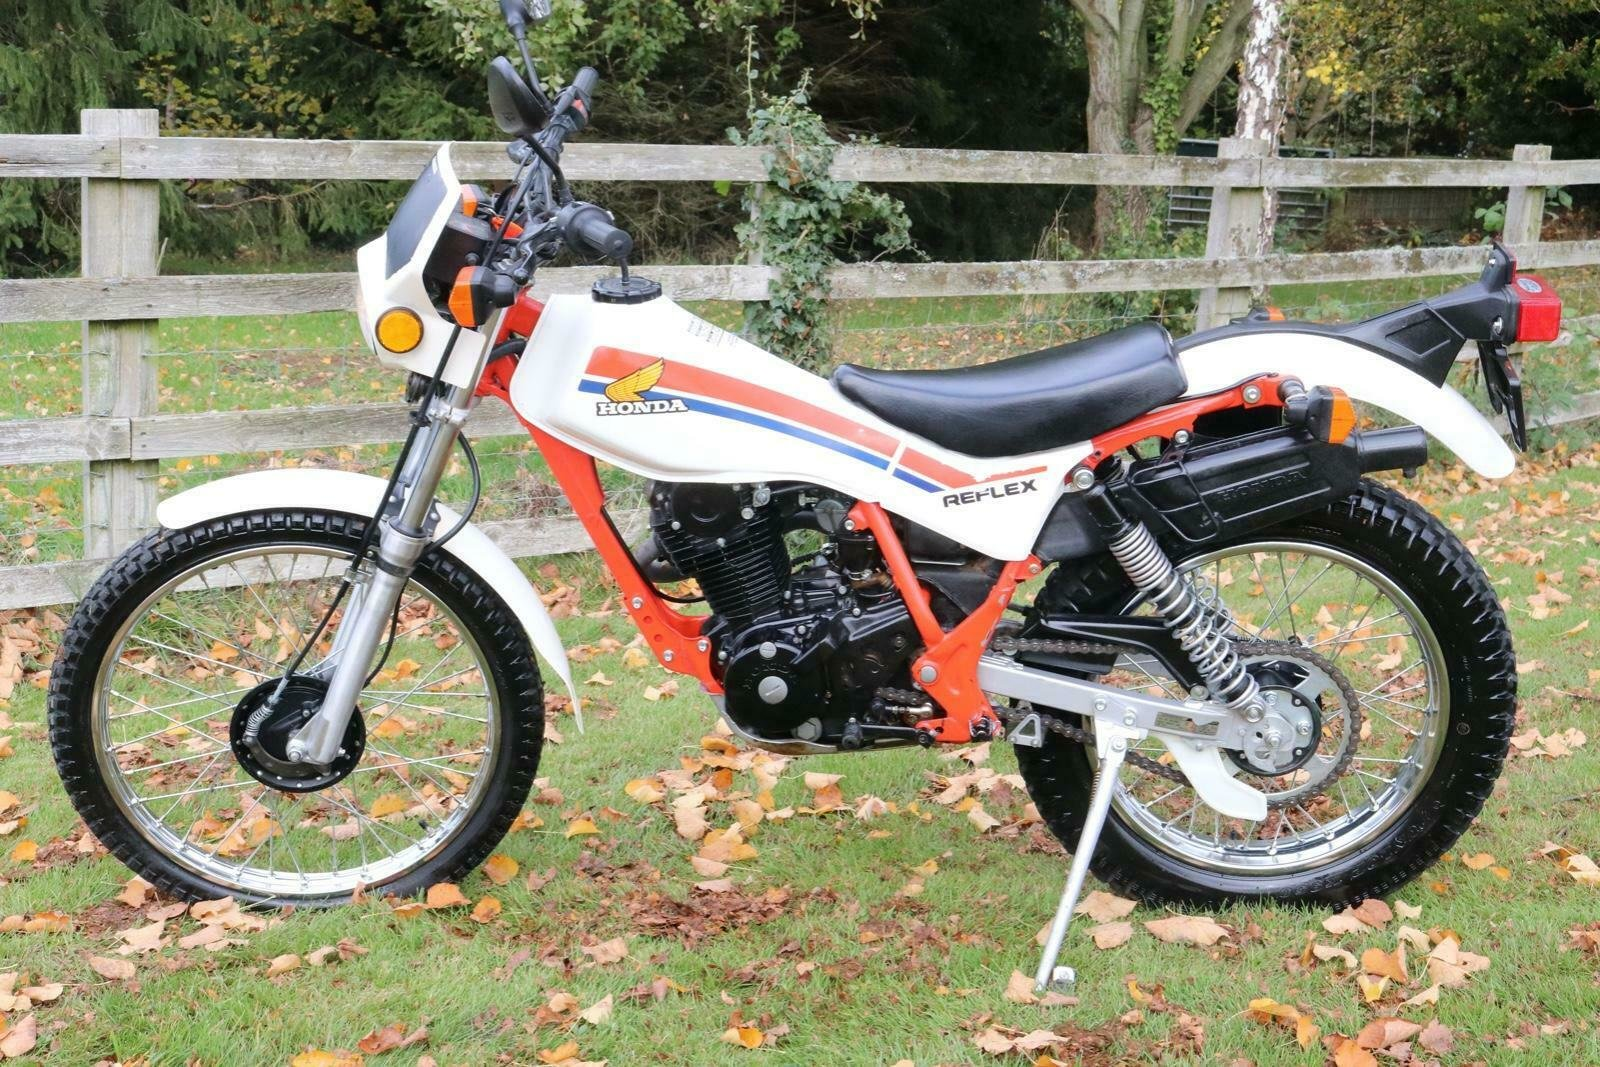 1986 Honda TLR 200 TL R 200 Reflex with just 613 miles from new!! For Sale (picture 1 of 5)